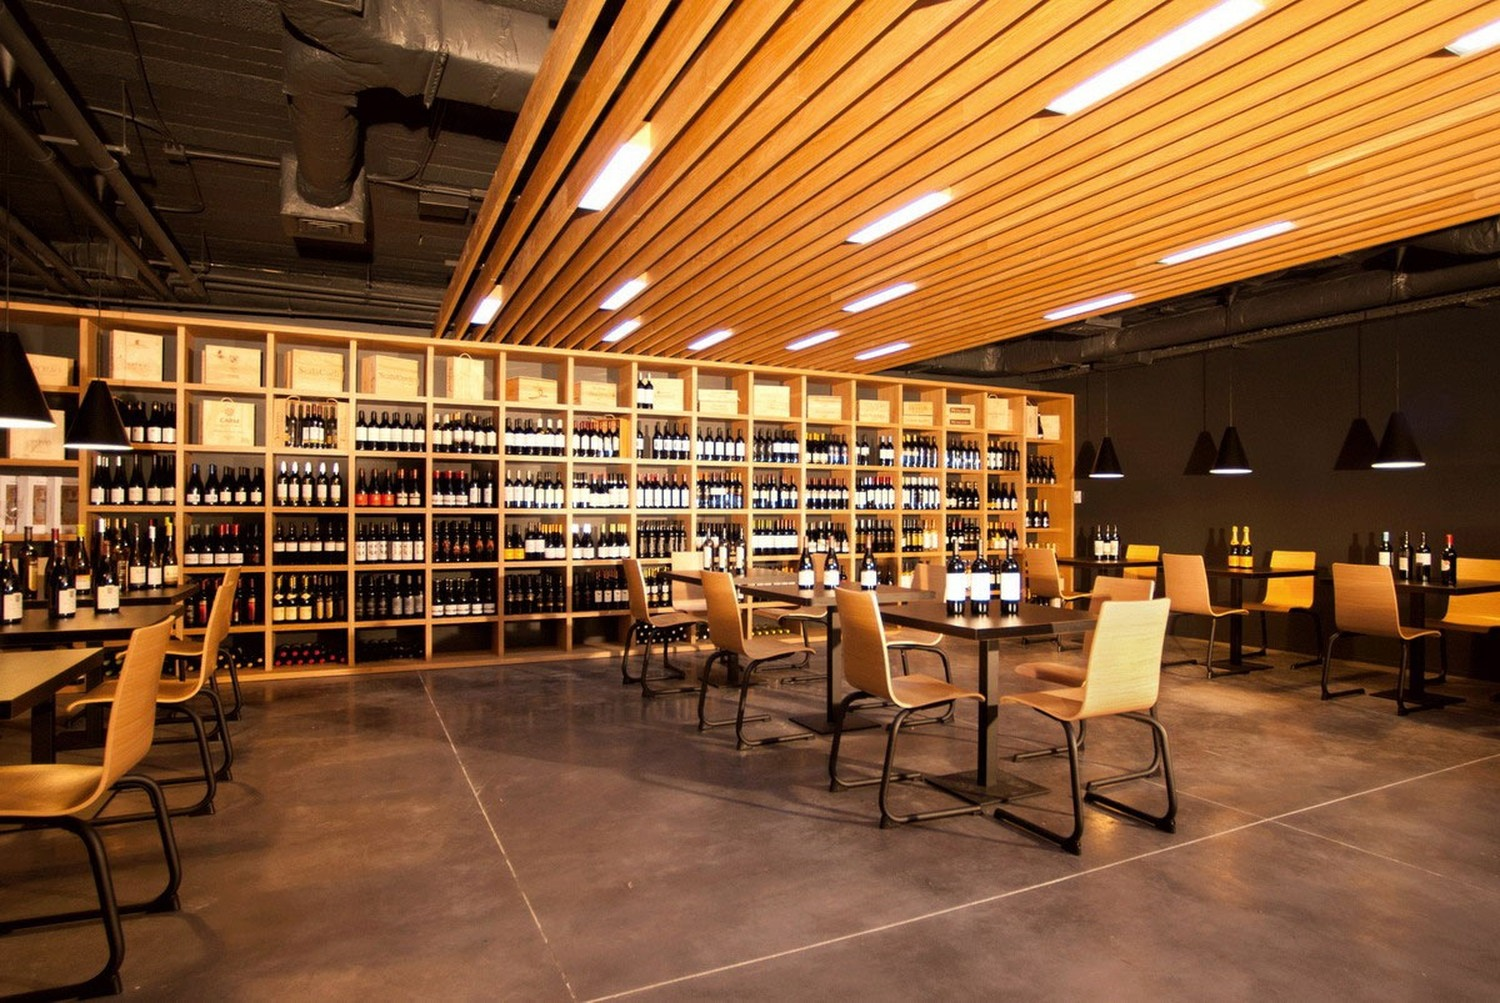 Design wine hotel by barbosa guimaraes arquitectos for Wine and design hotel vienna